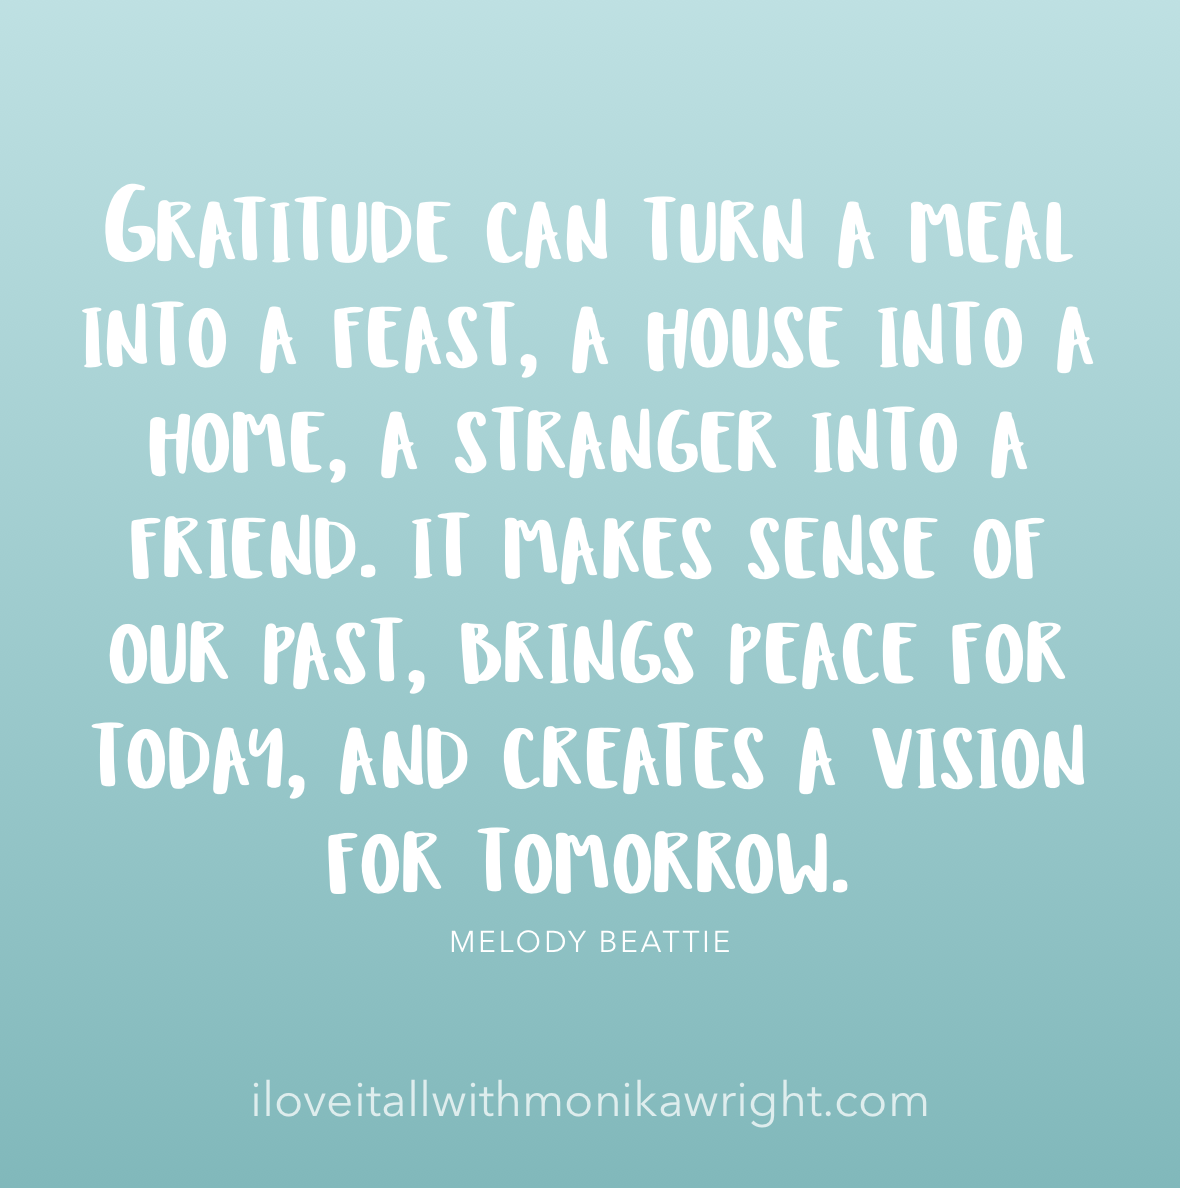 #Sunday Quote #gratitude #vision # joy #happiness #quote #quotes #Sunday Photos #motiviation #mindfulness  #triumph #Mindset